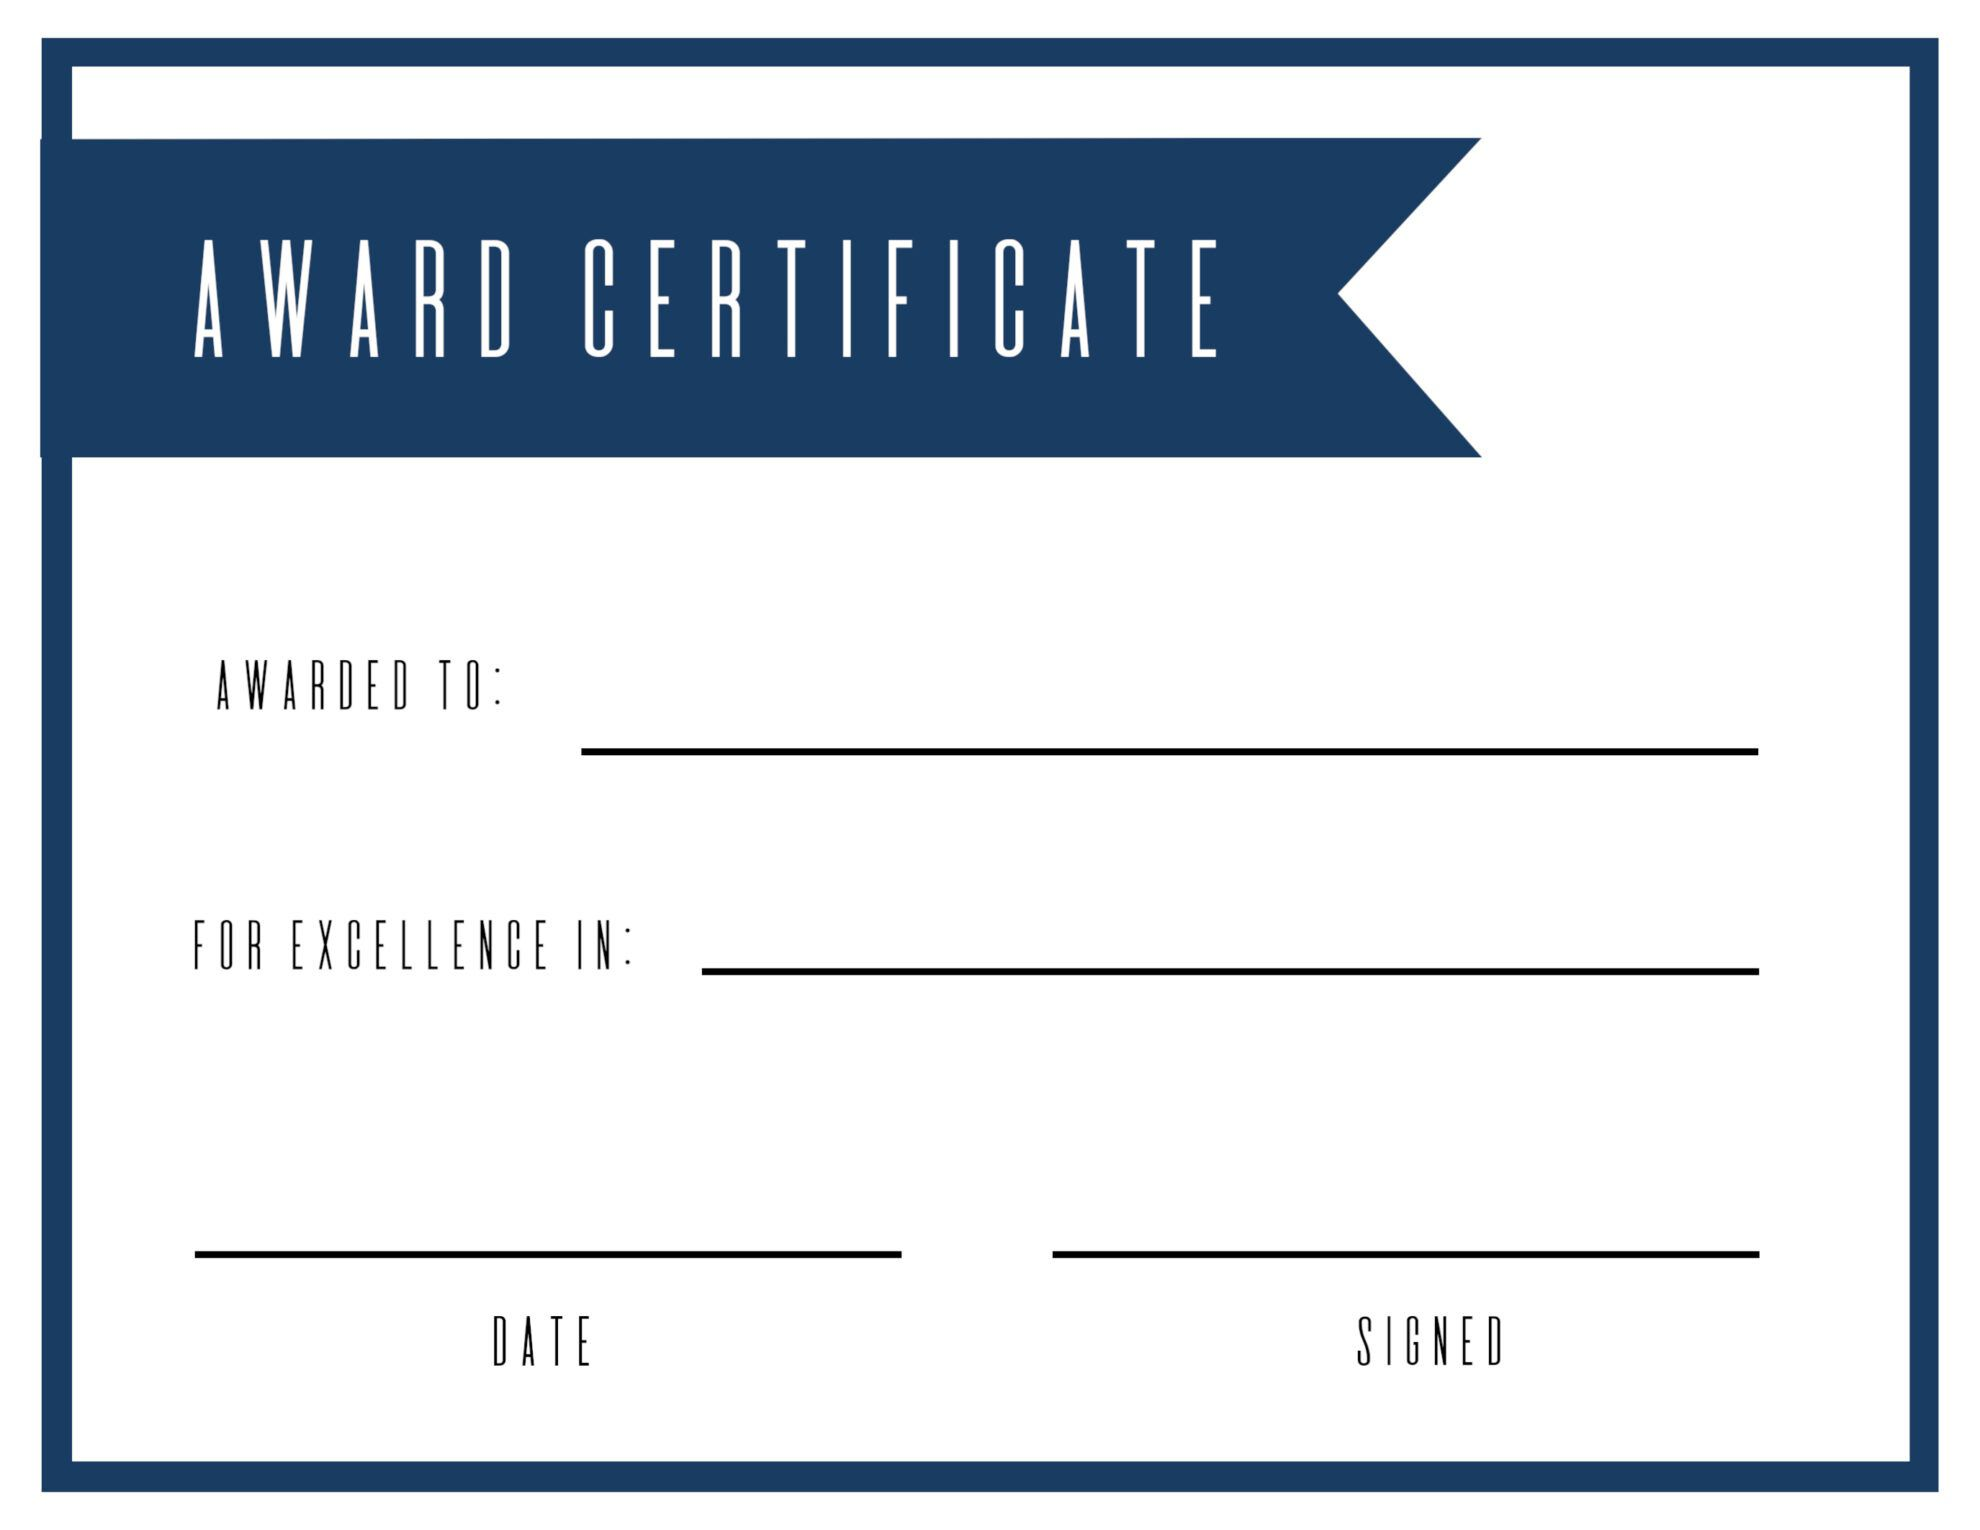 004 Astounding Recognition Certificate Template Free Idea  Employee Award Of Download WordFull